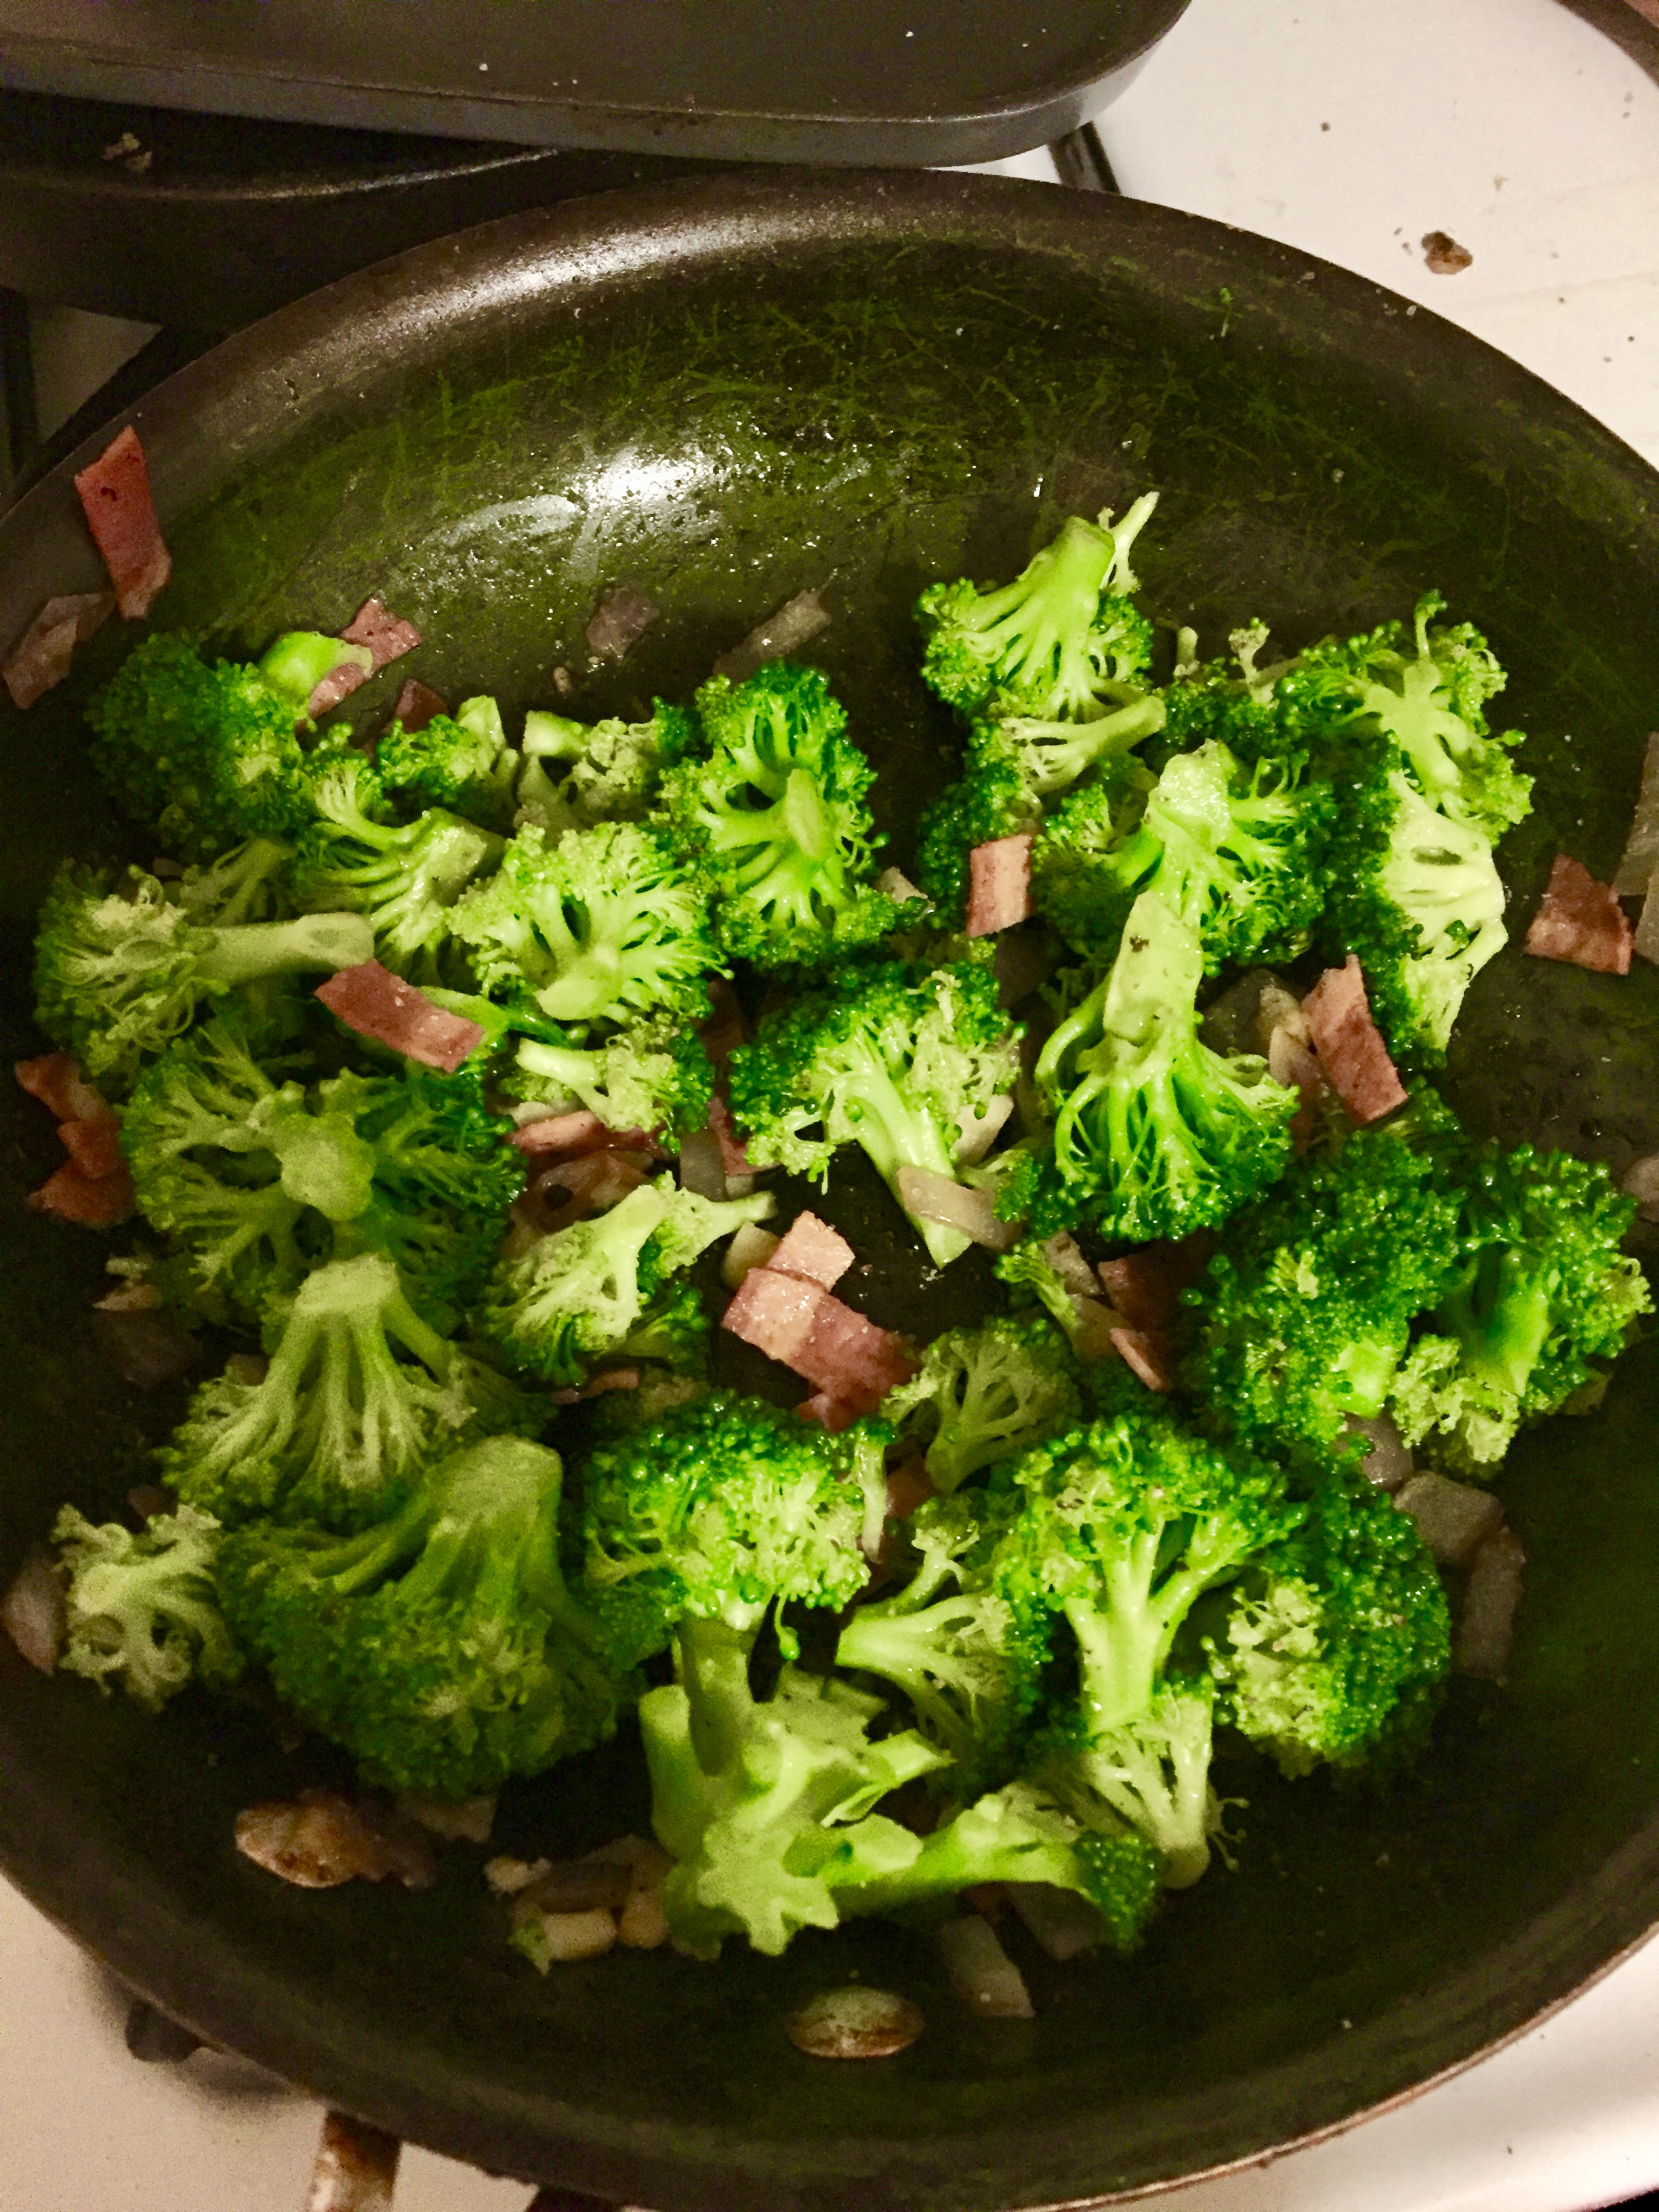 Add broccoli to the saucepan with the onions, garlic, bacon, and olive oil. Season the mixture with salt and pepper and set aside to cool.  When it is cooled, add diced cheddar cheese and 3 tbls of red wine vinegar.  Serve chilled and you'll elicit smiles, even if you're wearing clothes.